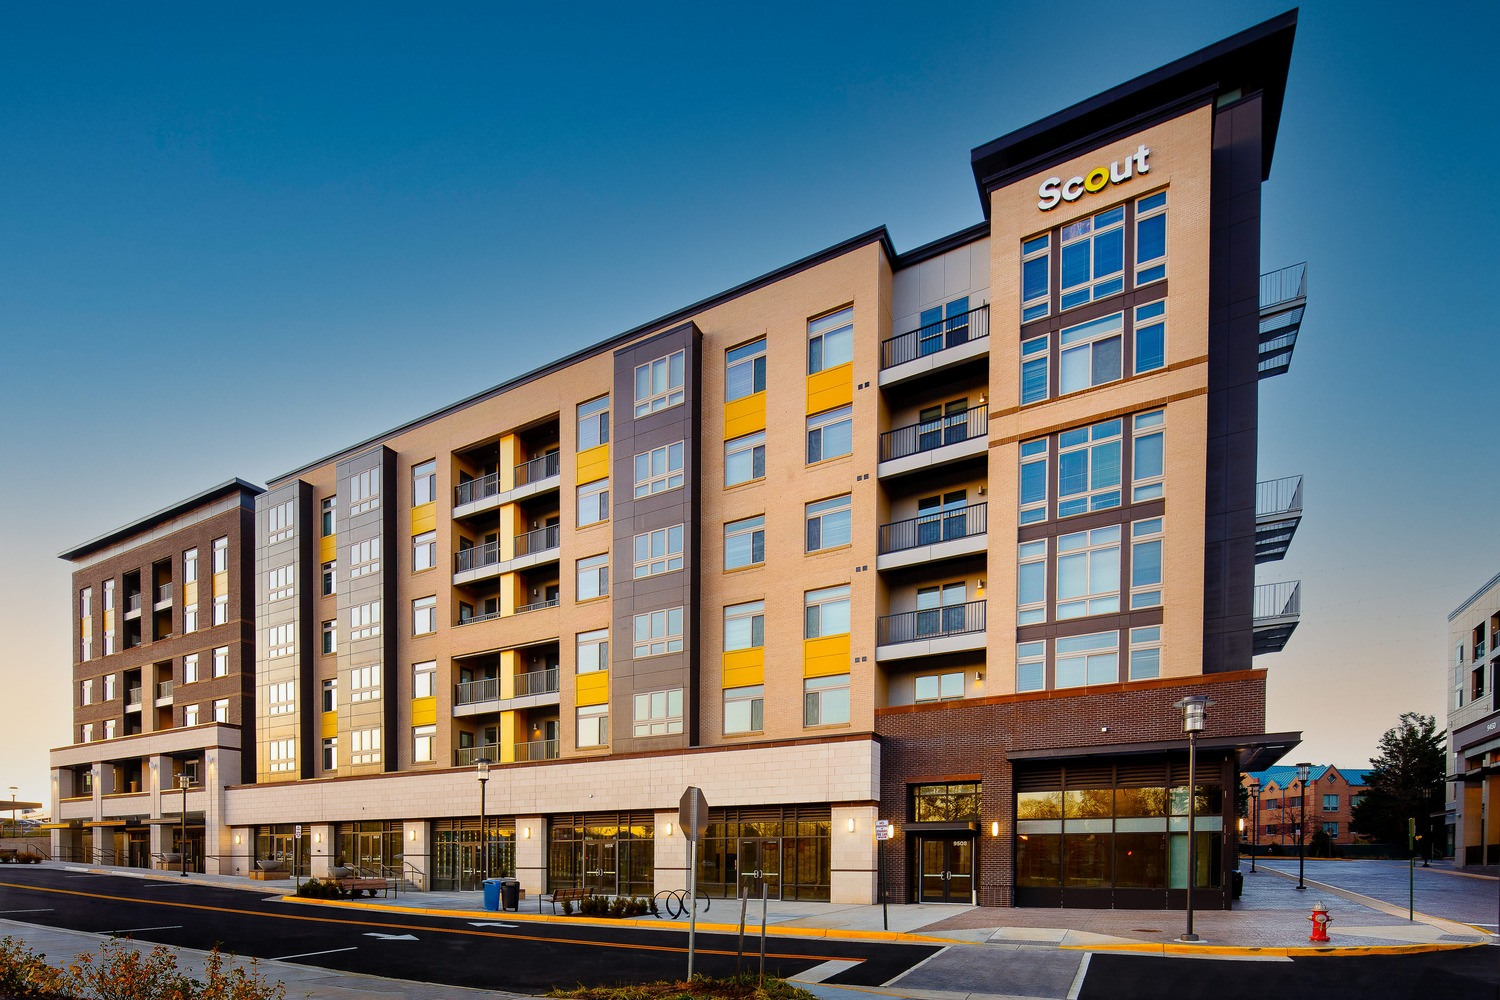 CBG builds Scout on the Circle, a 400-Unit Mixed-Use Community Across Two Buildings in Fairfax, VA